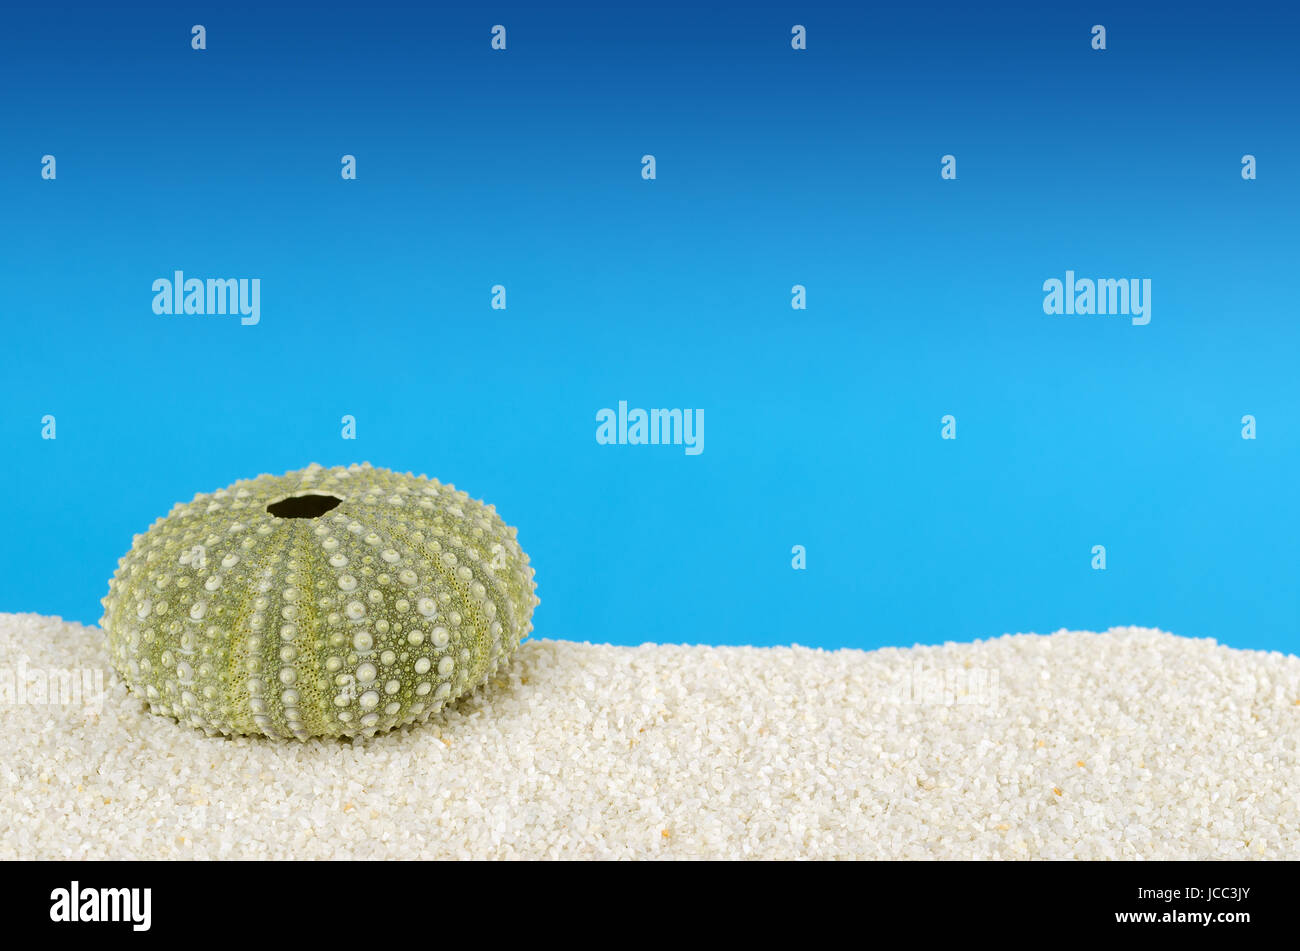 Two green sea urchin shells on white sand with blue background. Urchins, also sea hedgehogs, with globular endoskeleton, - Stock Image